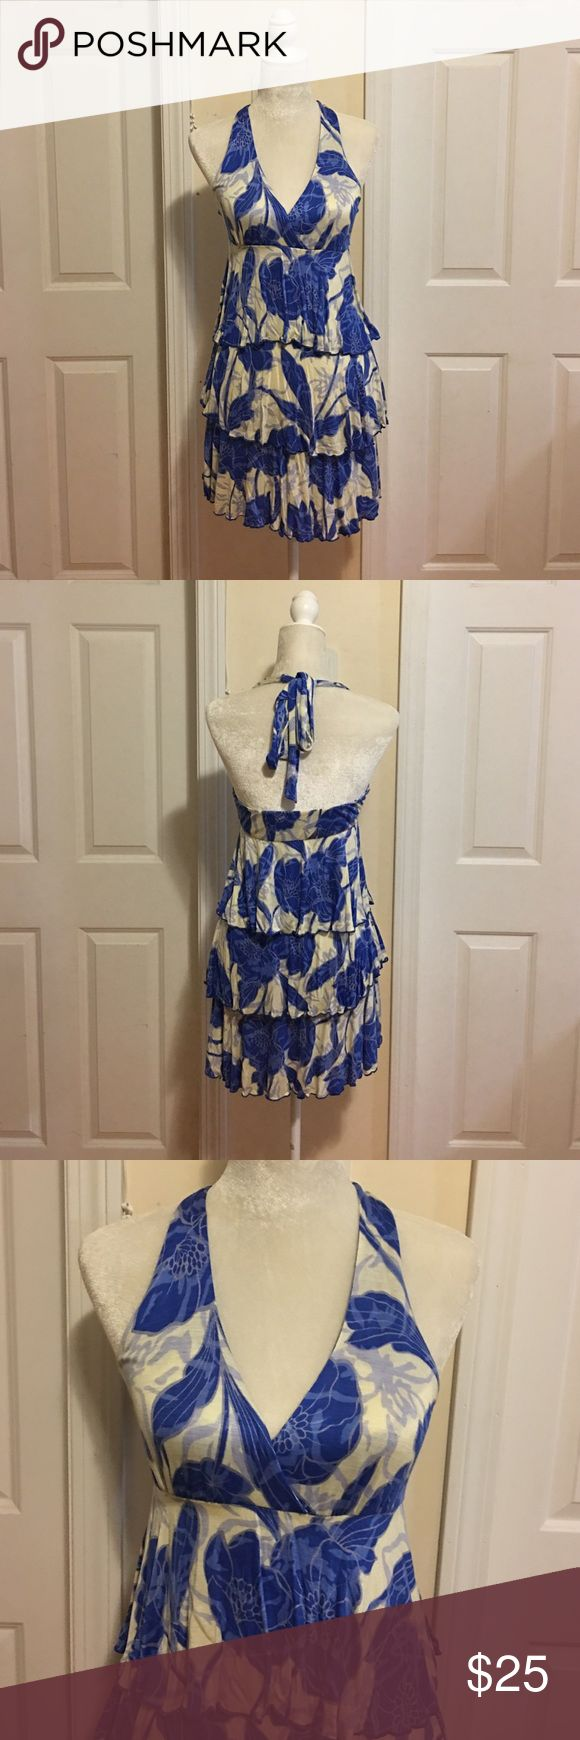 NWOT Gabriella Rocha Print Halter Dress. NWOT Cute Halter Dress with layers of ruffles. No size indicated but fitted like a small. 100 Rayon. New, never worn. Gabriella Rocha Dresses